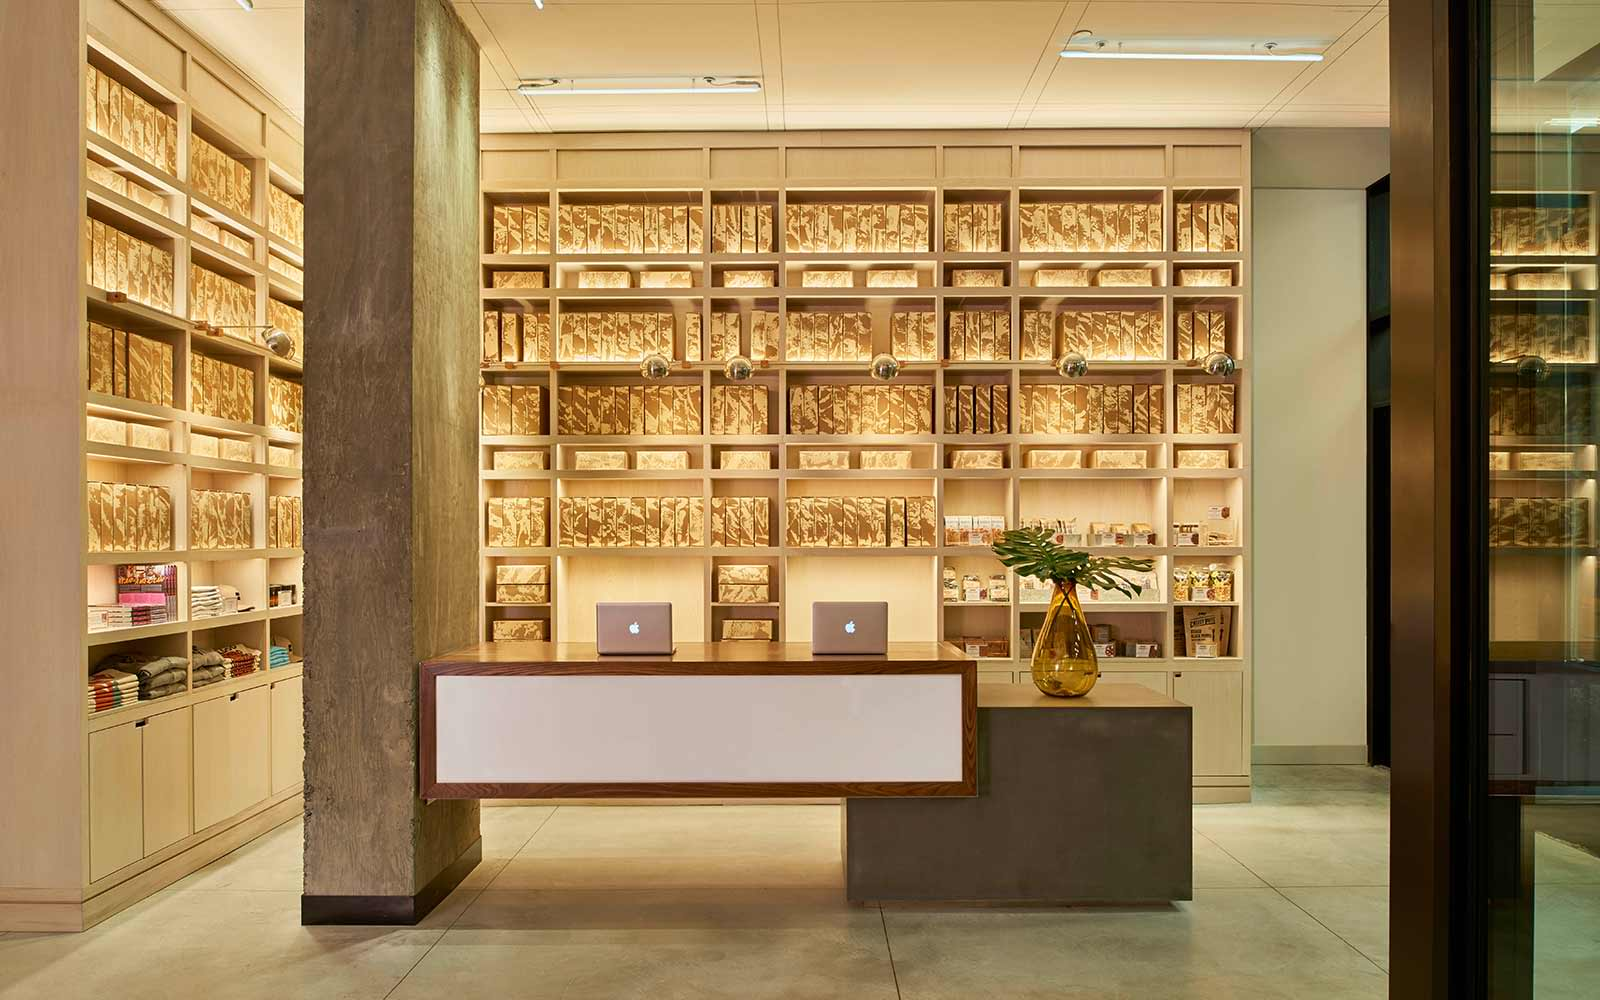 Arlo NoMad Lobby with wall shelves surrounding the modern front desk